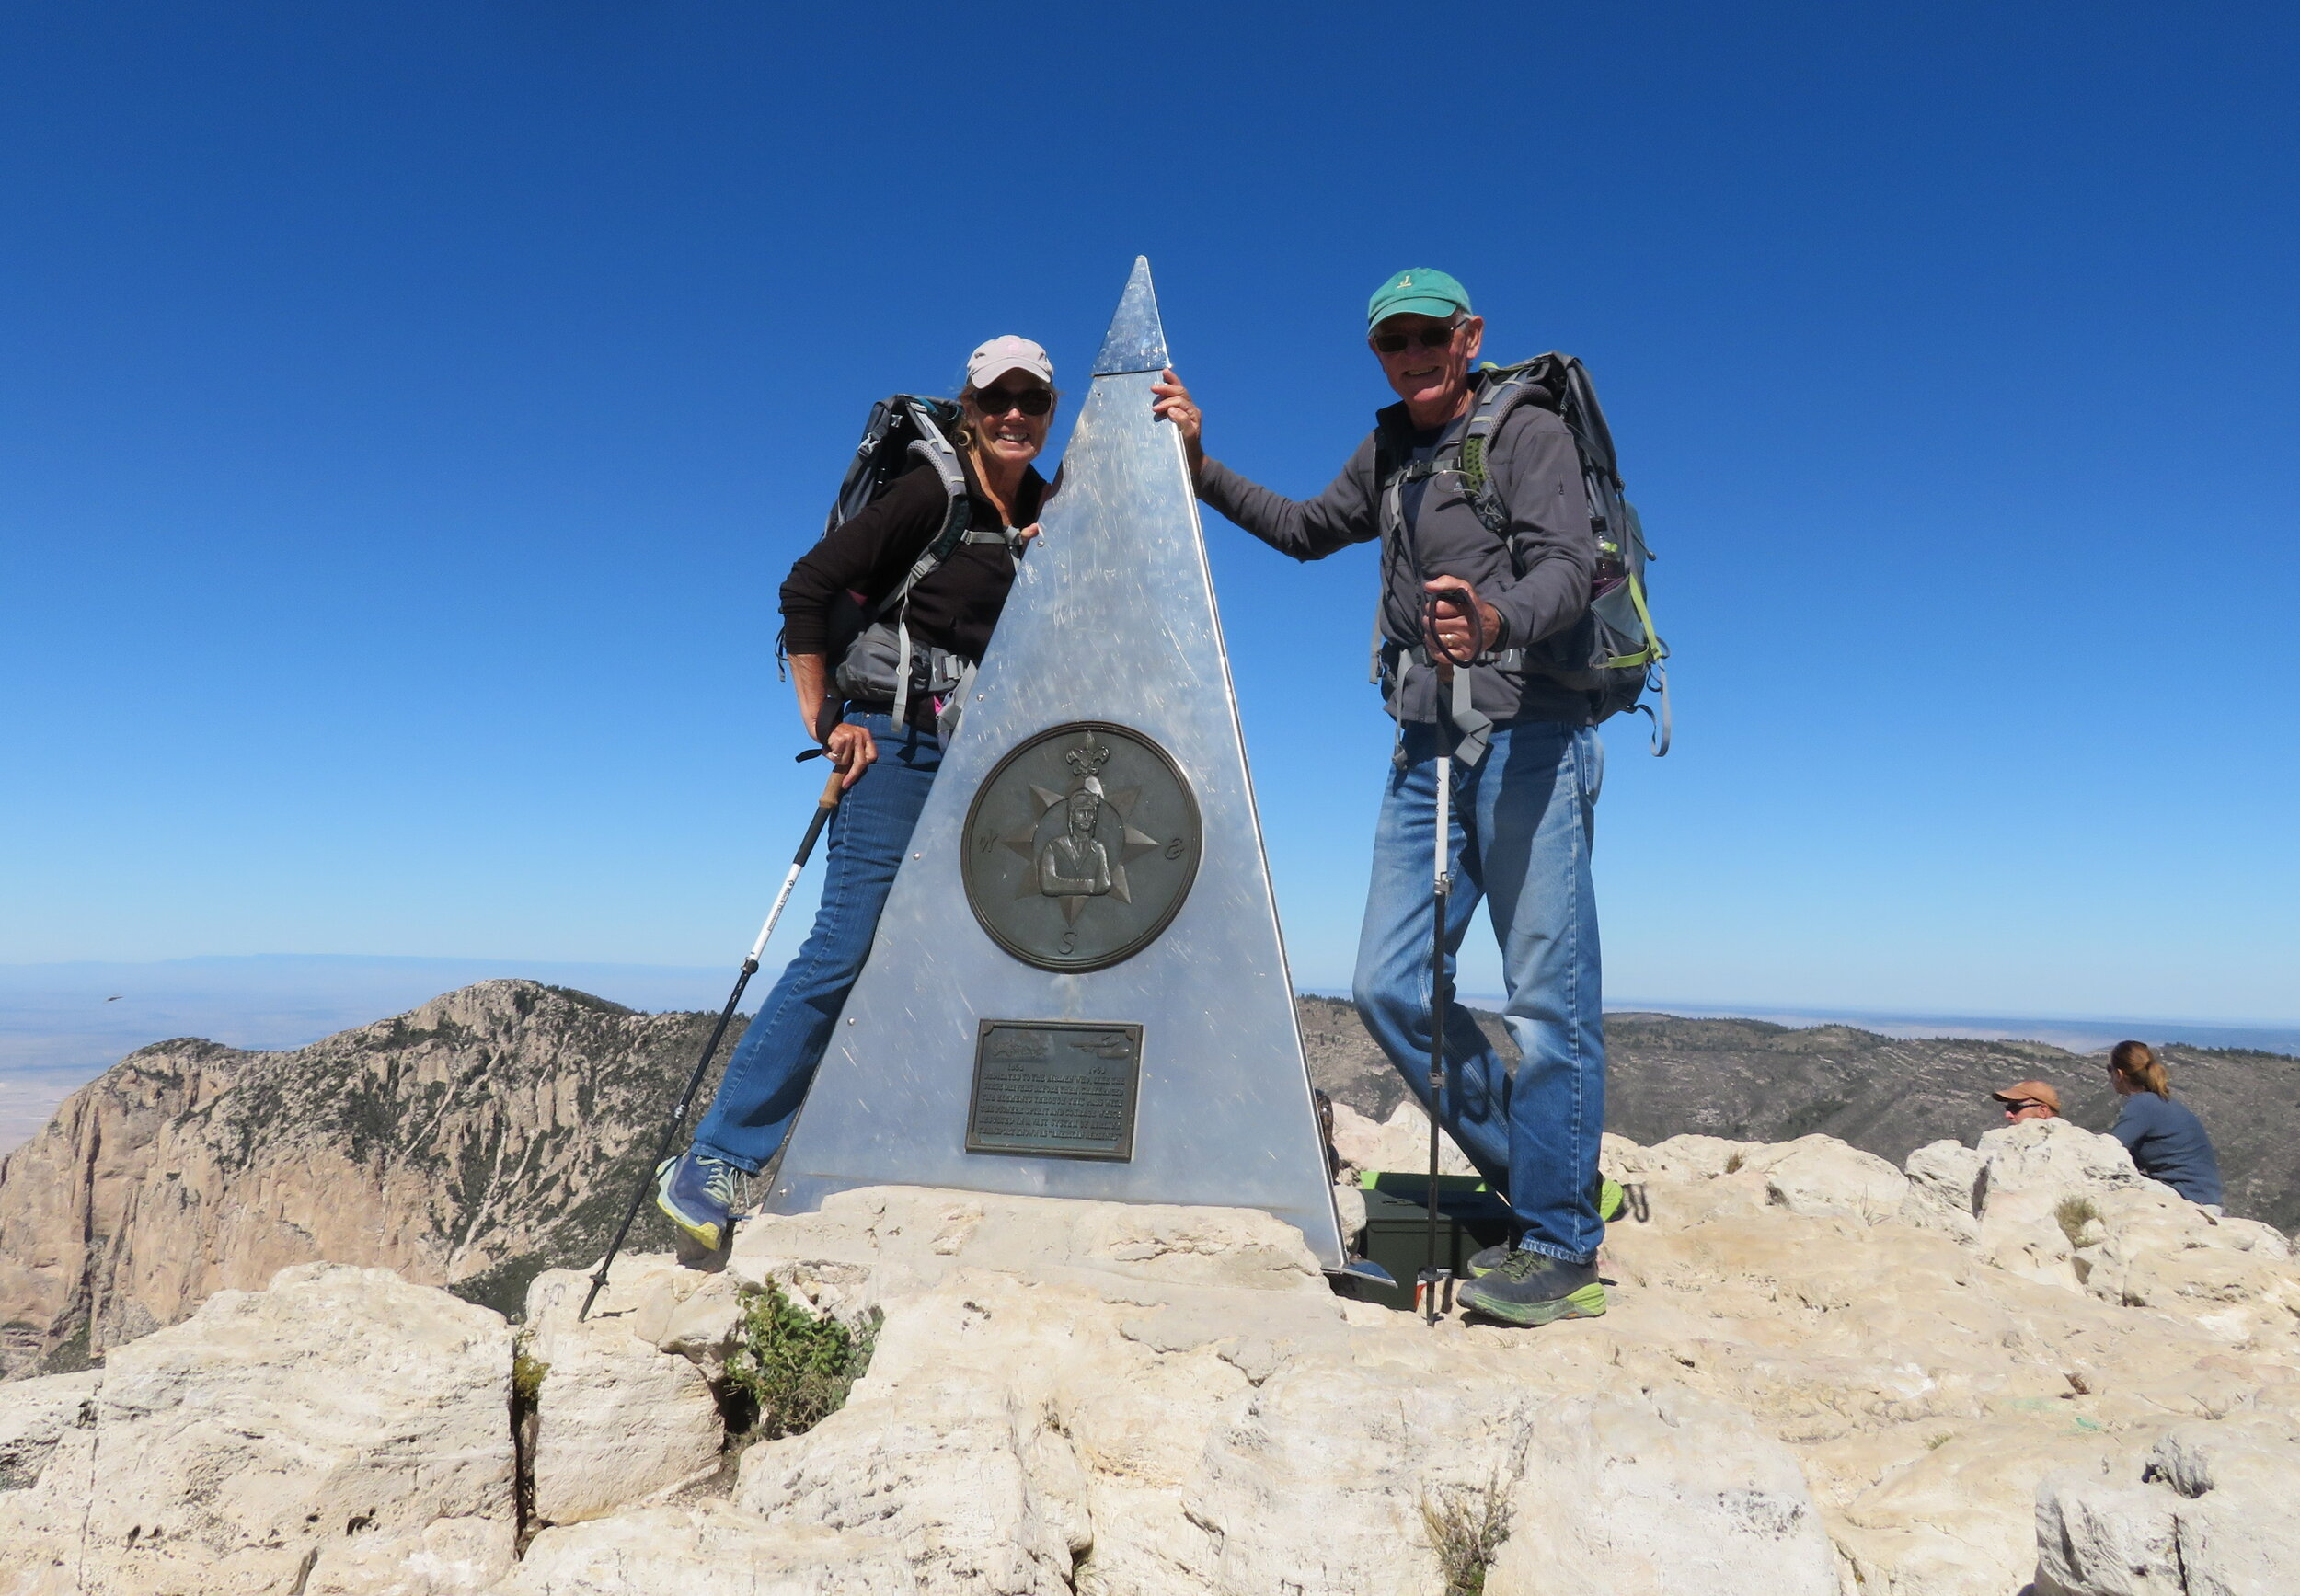 The Top of Texas… Guadalupe Peak at 8,751' is the highest point in Texas.